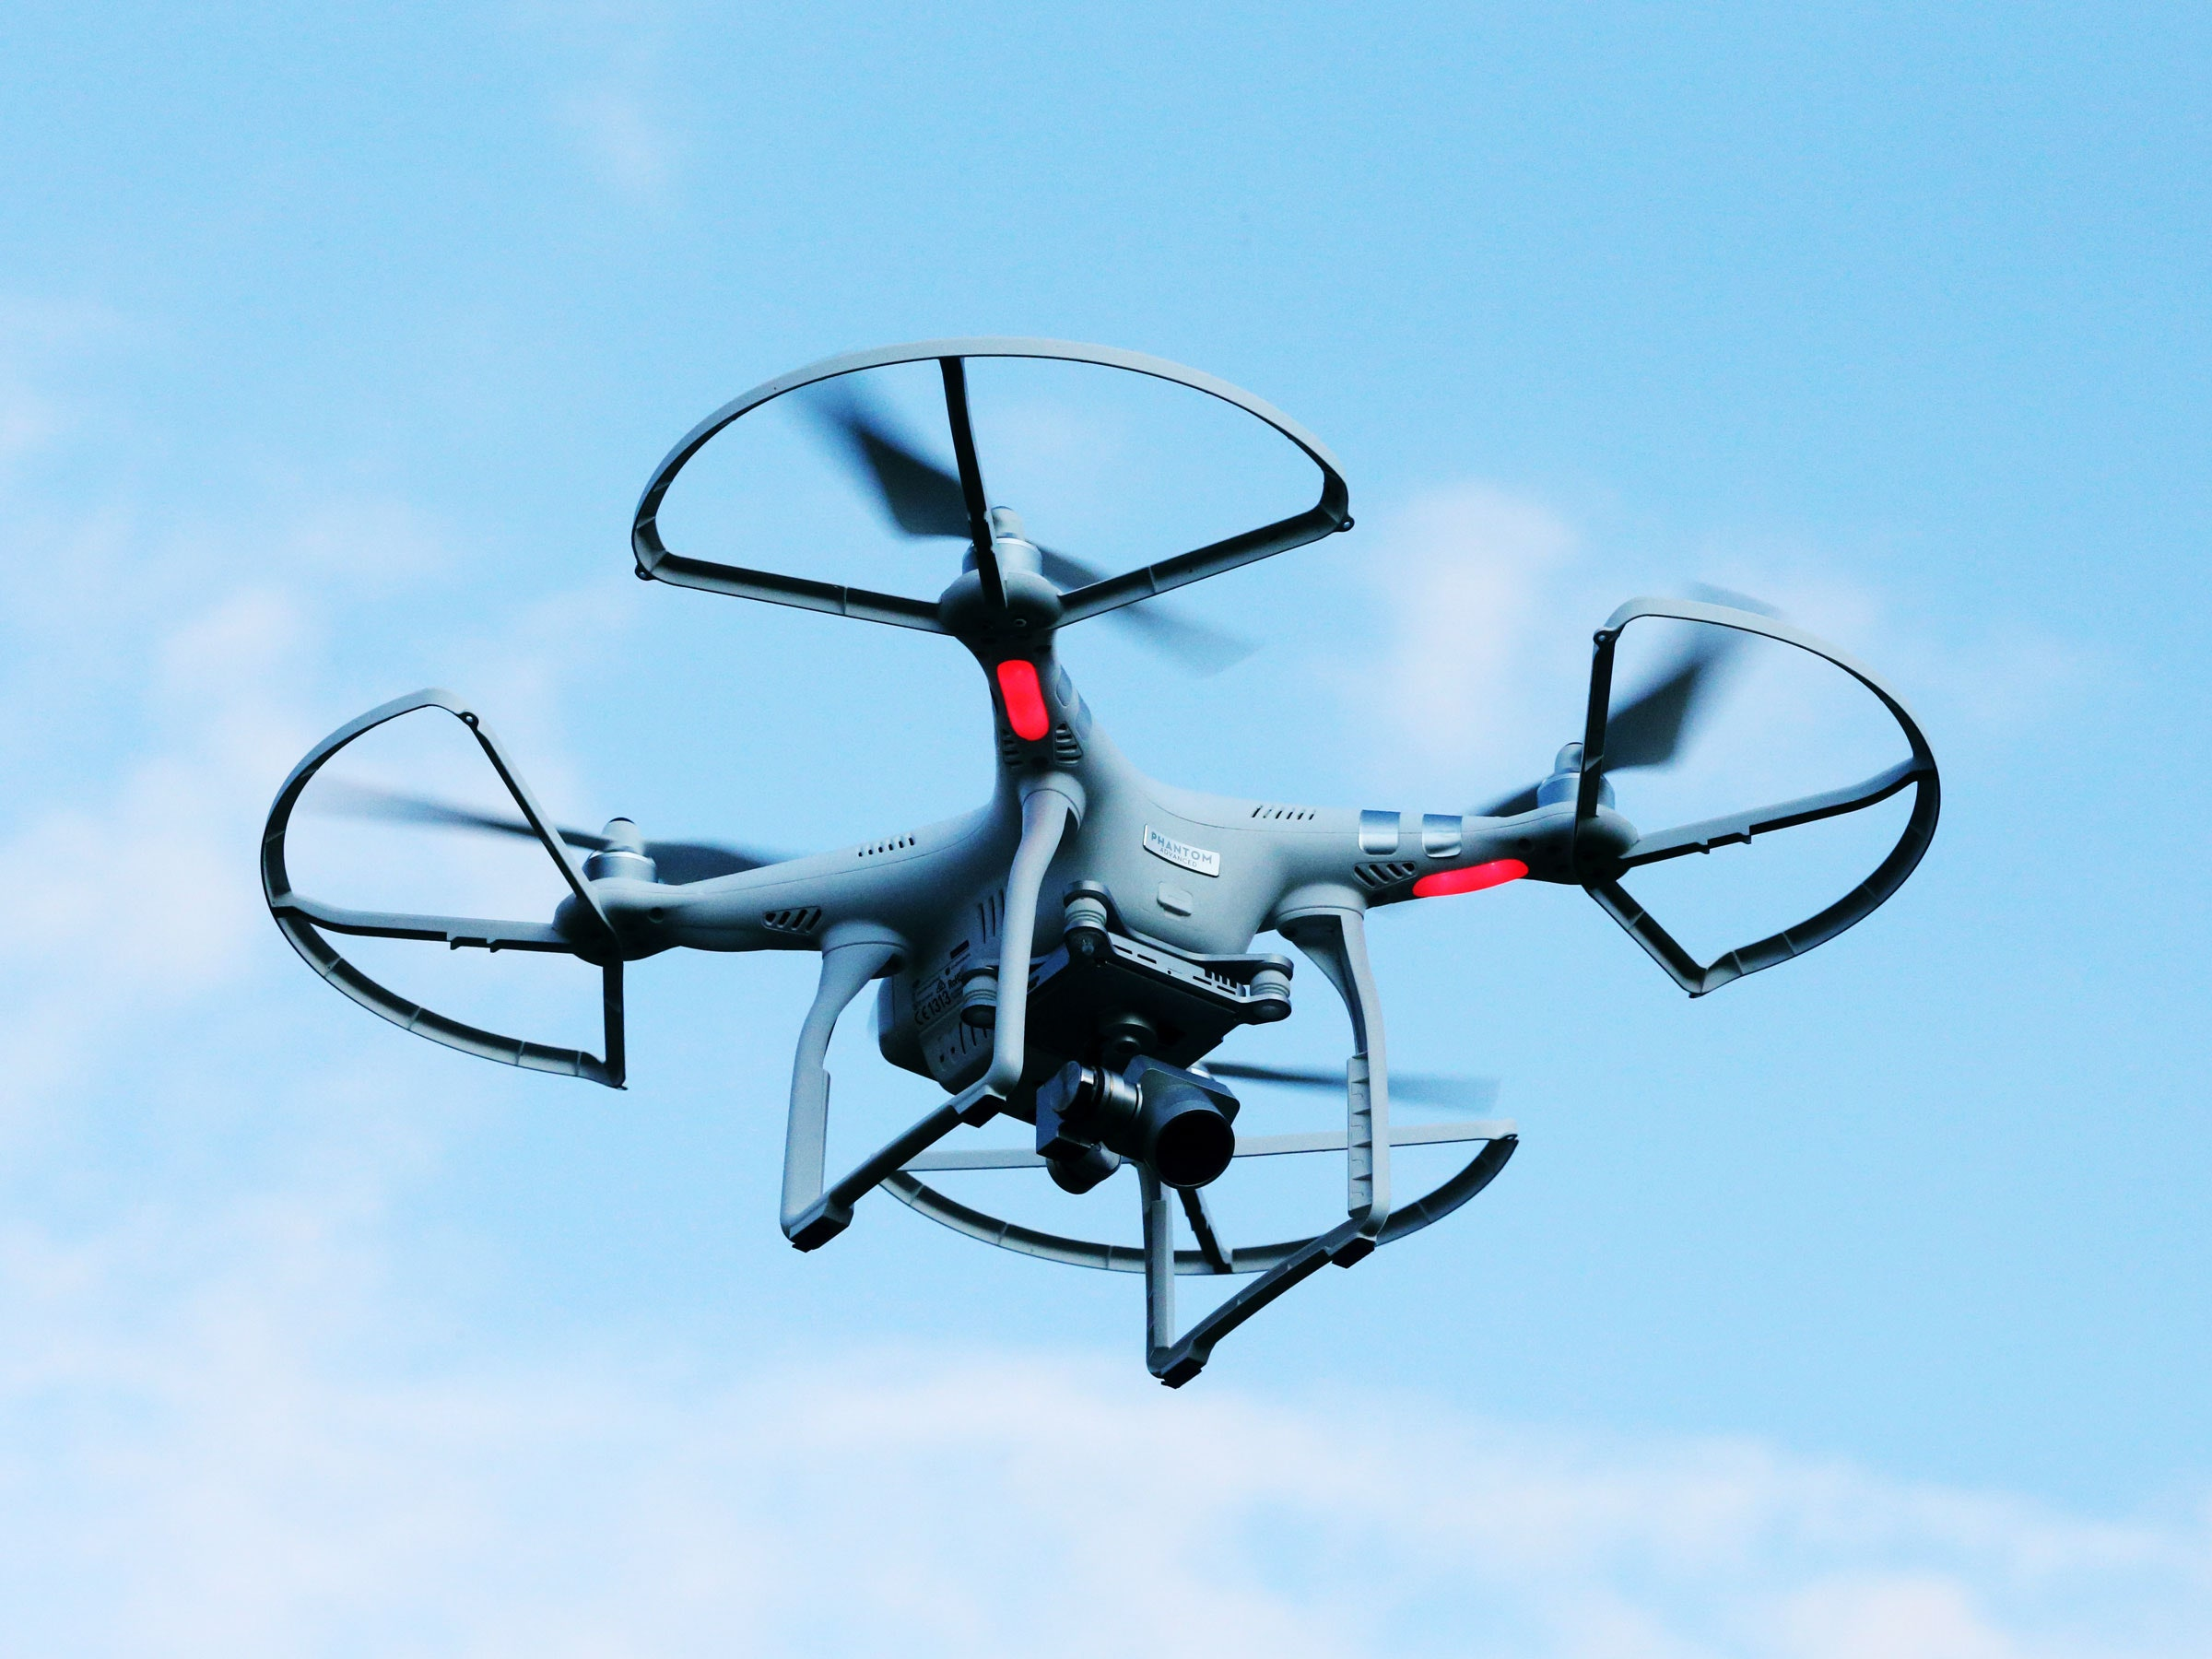 Concord Police To Host Neighborhood Meeting To Discuss Proposed Drone Program